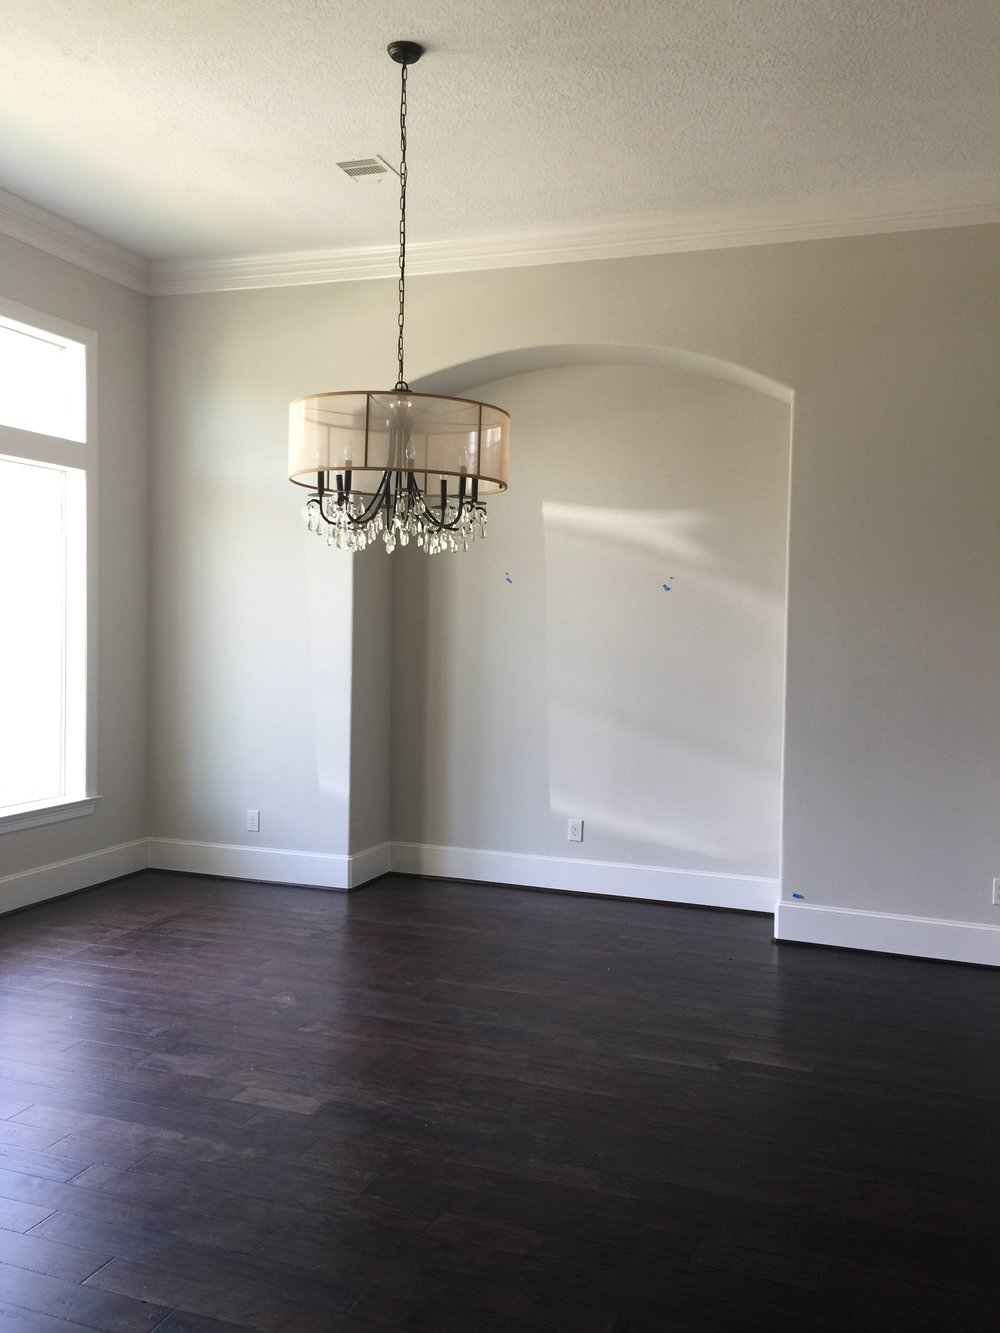 BEFORE - plain, empty space with builder chandelier